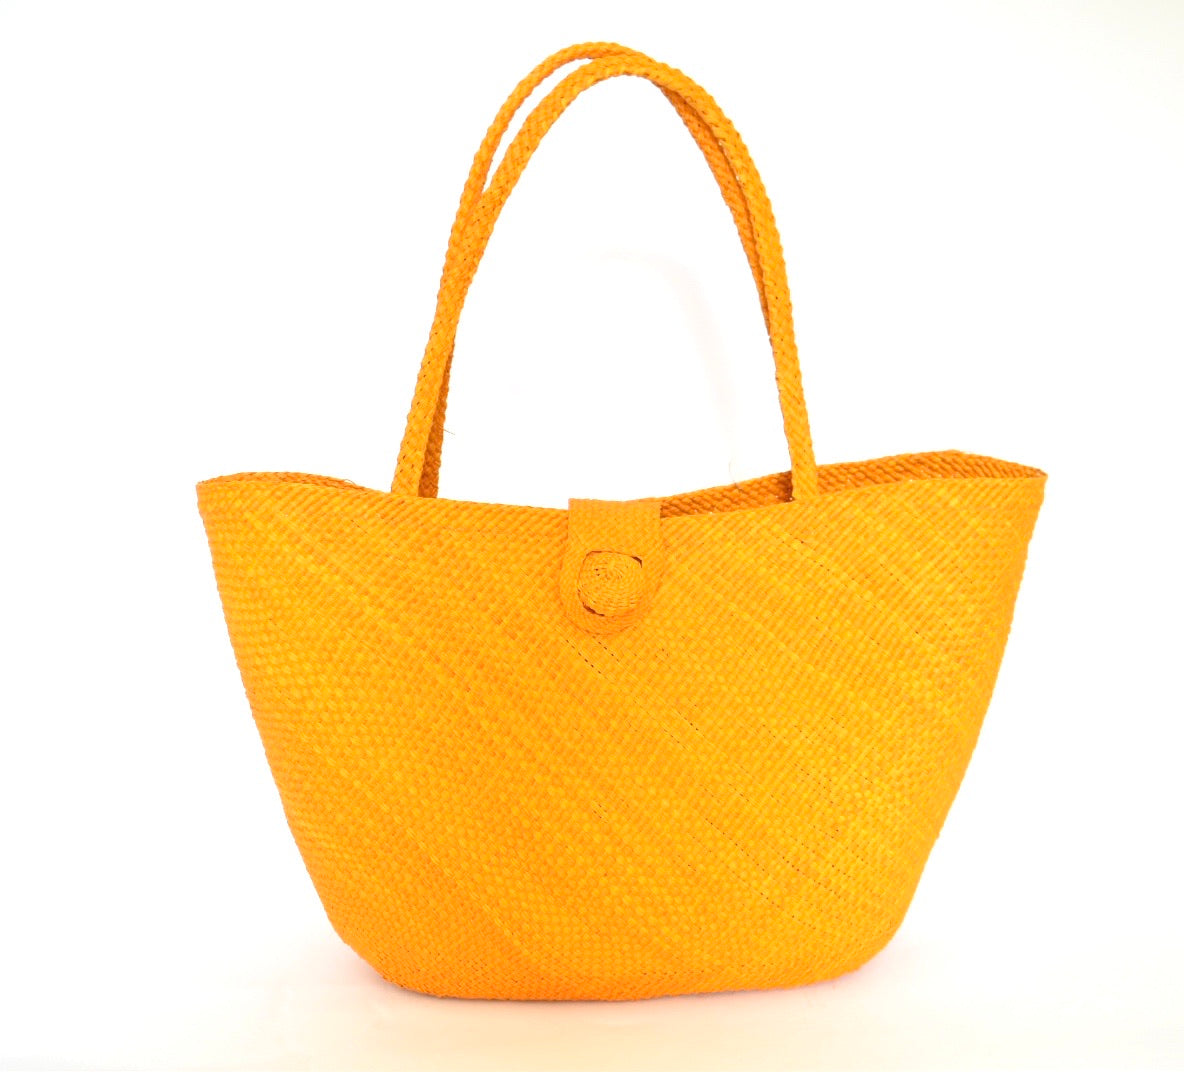 Iraca Straw Tote Bag